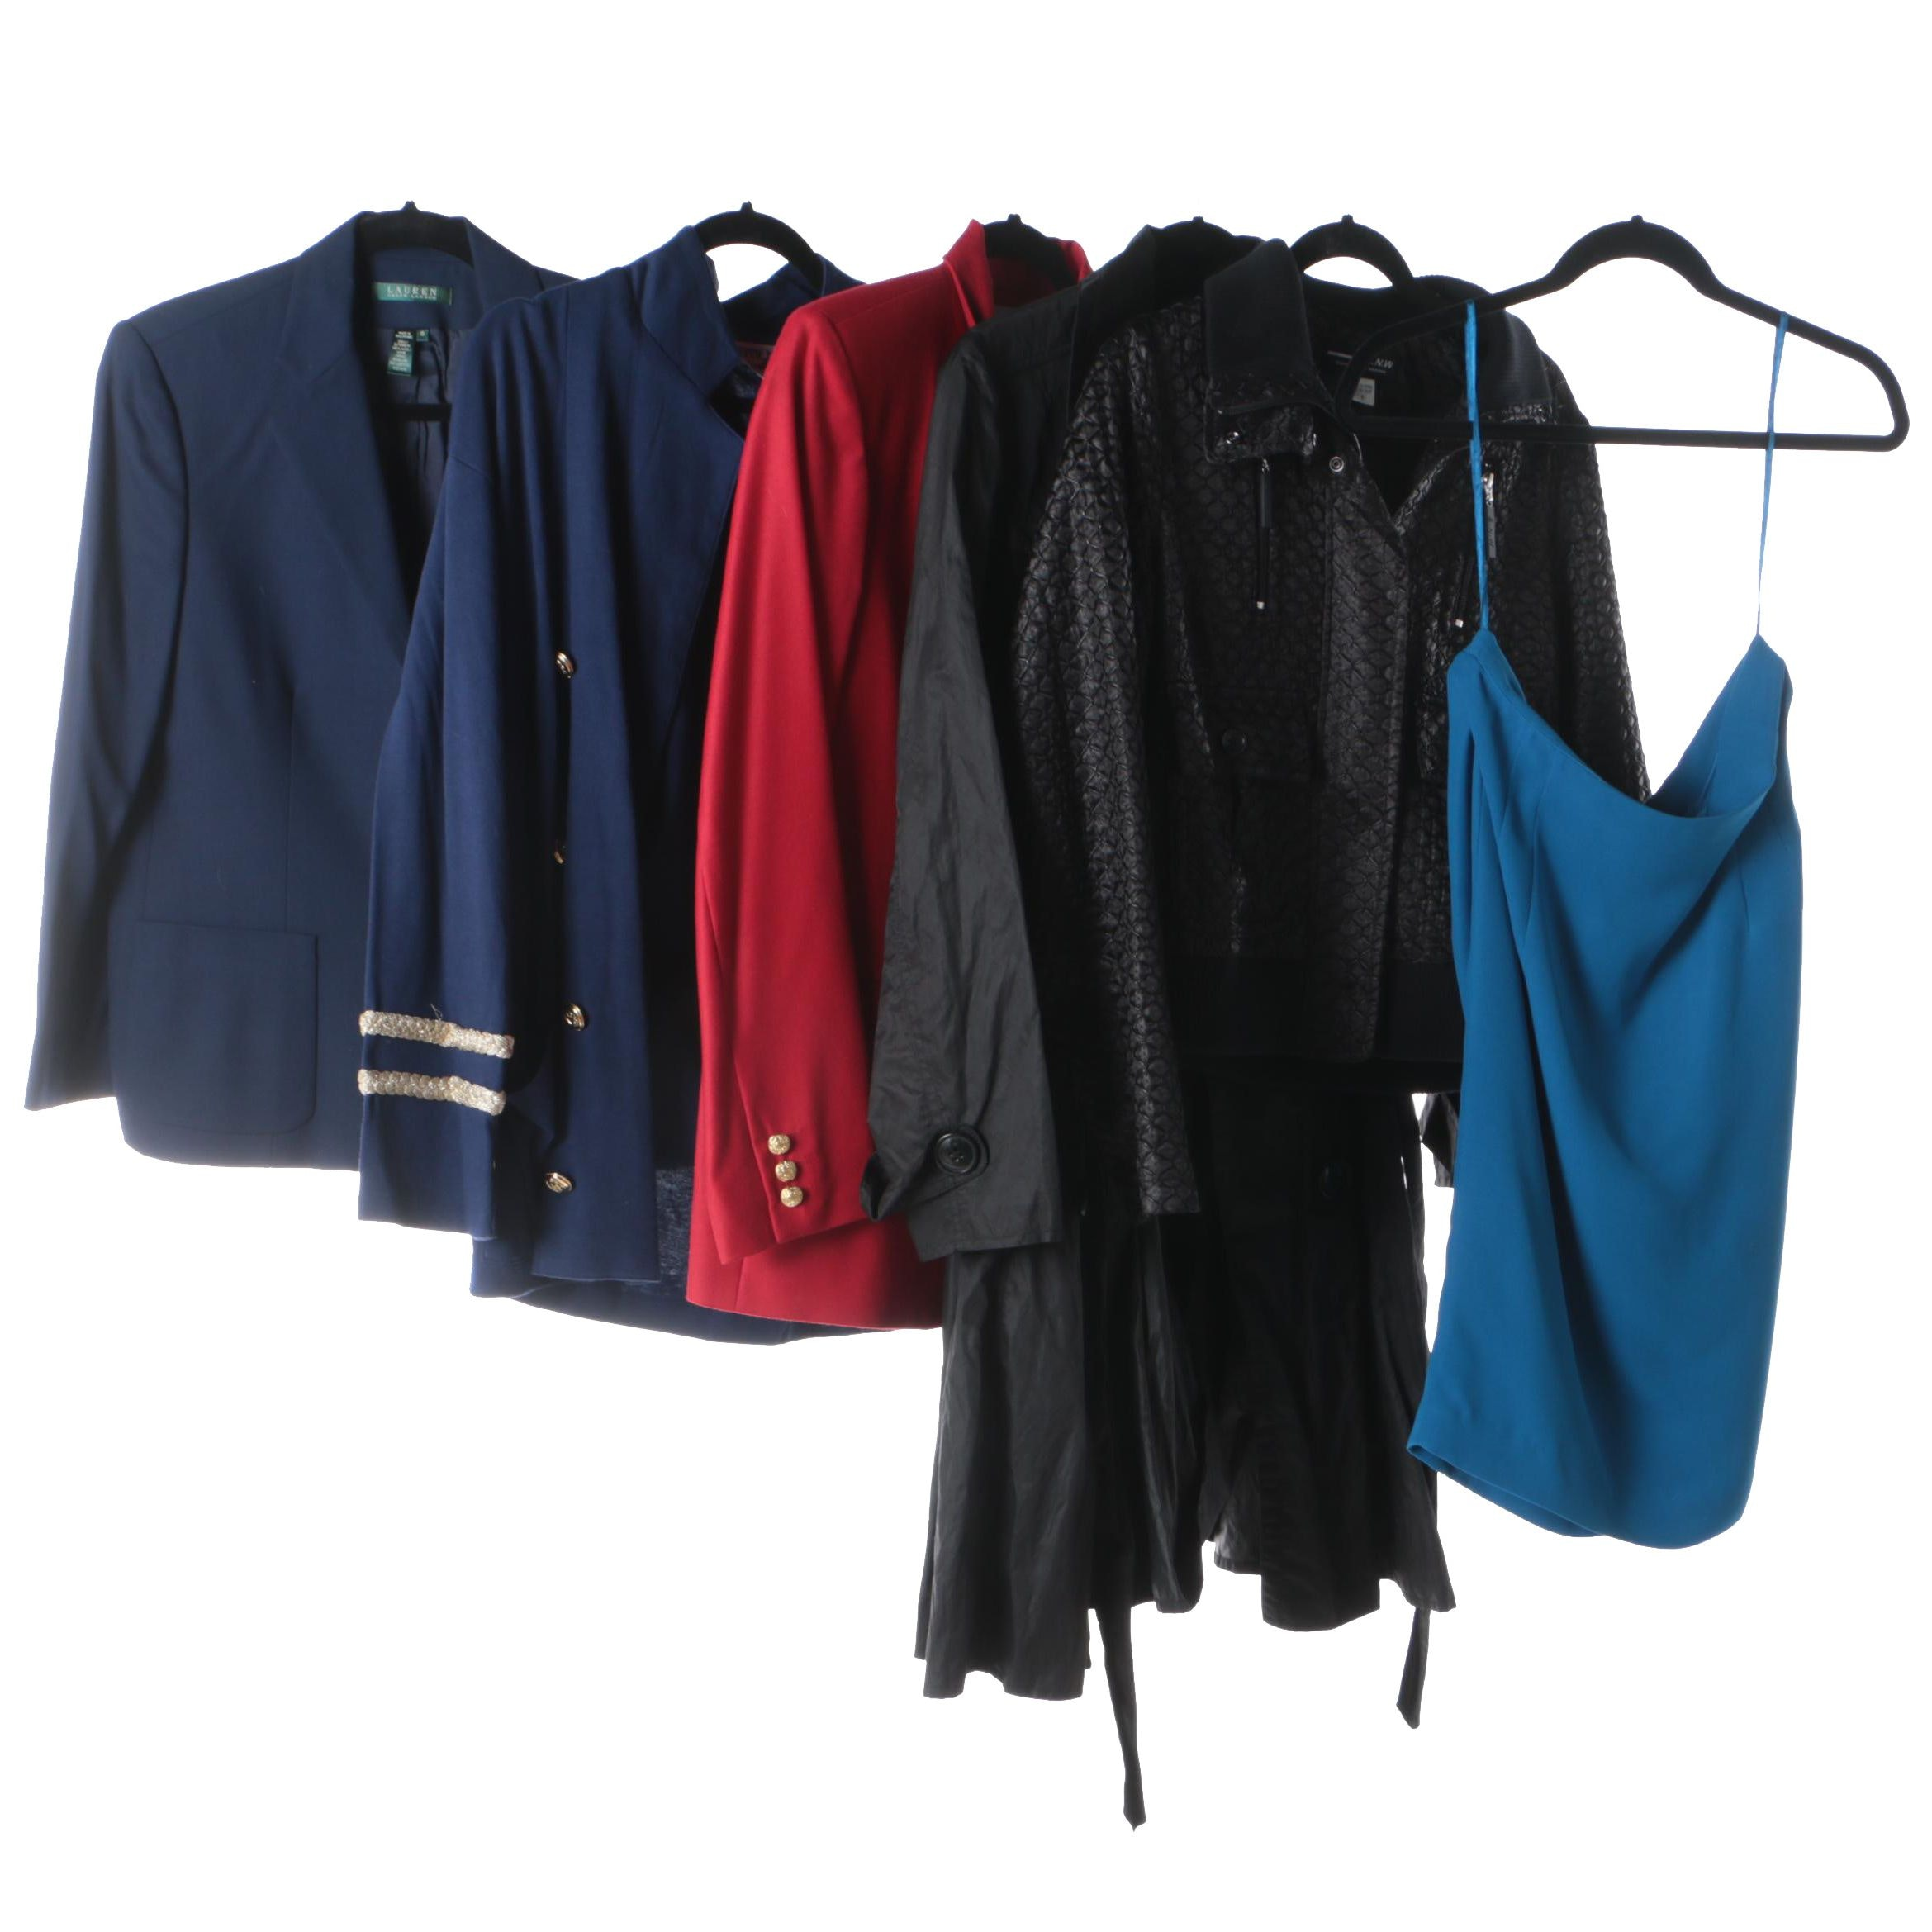 Women's Blazers, Jackets and Skirt Including Bianca Nygard Weekend and I.N.C.